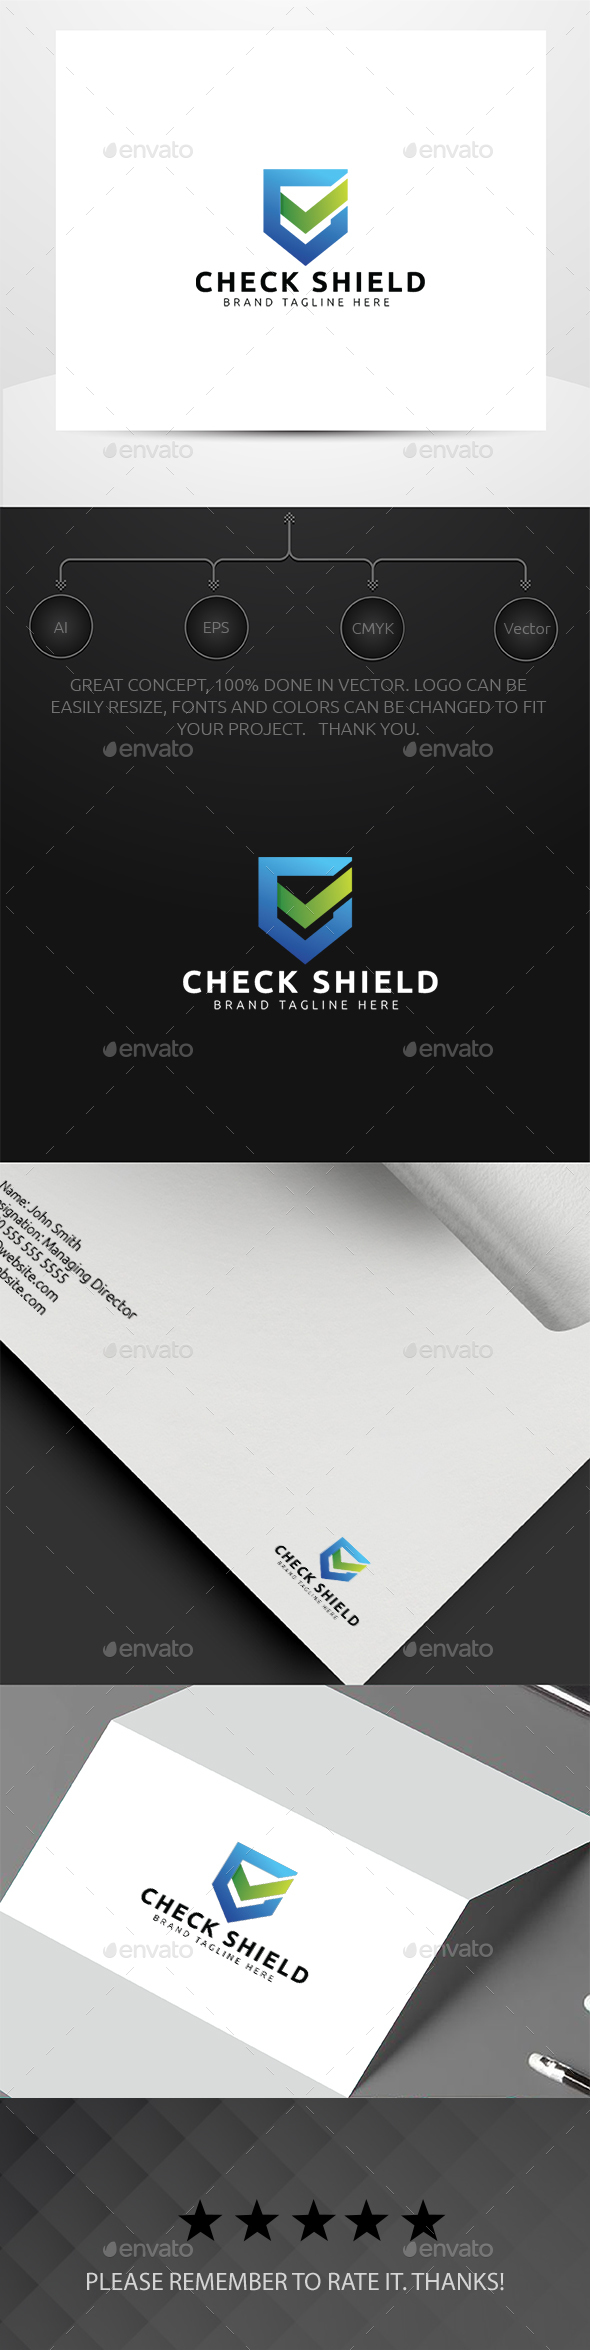 Check Shield - Symbols Logo Templates